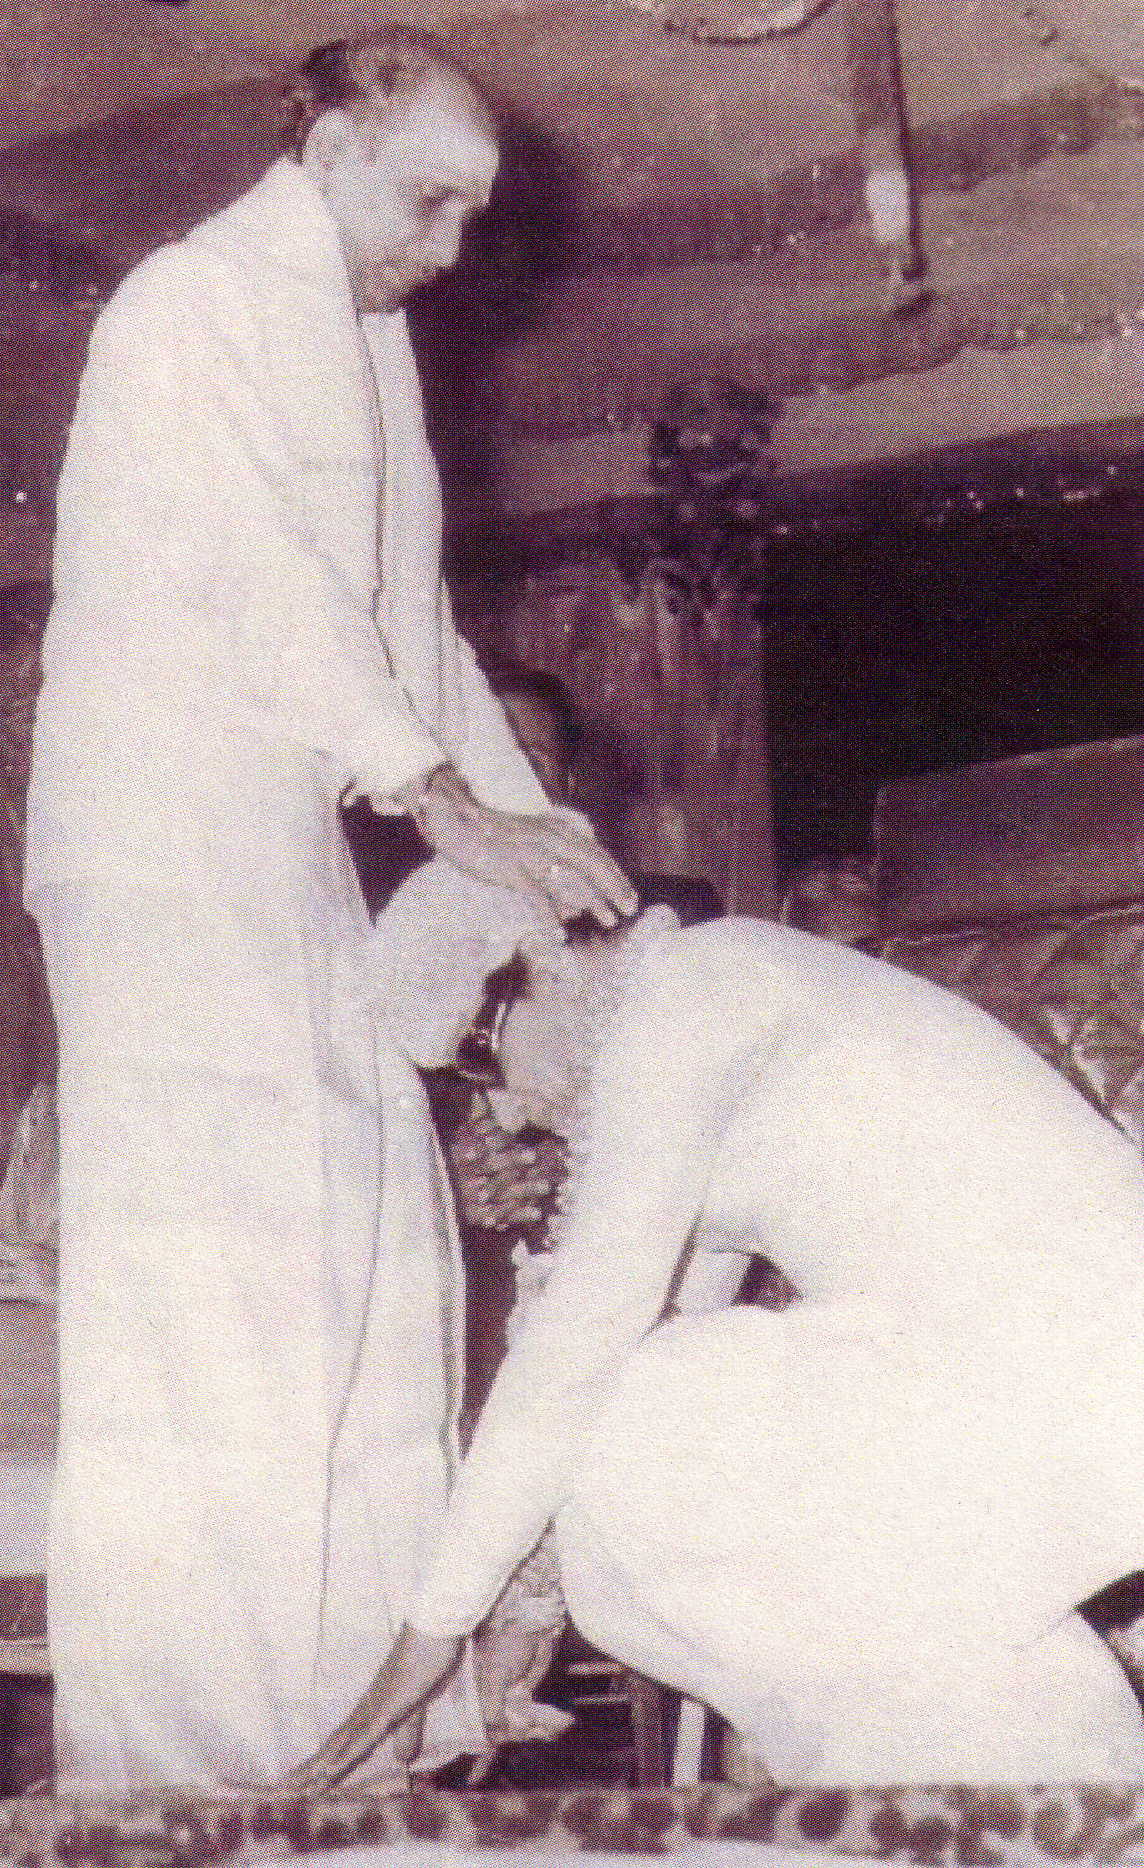 MGR greeting M.K. Radha in a public function